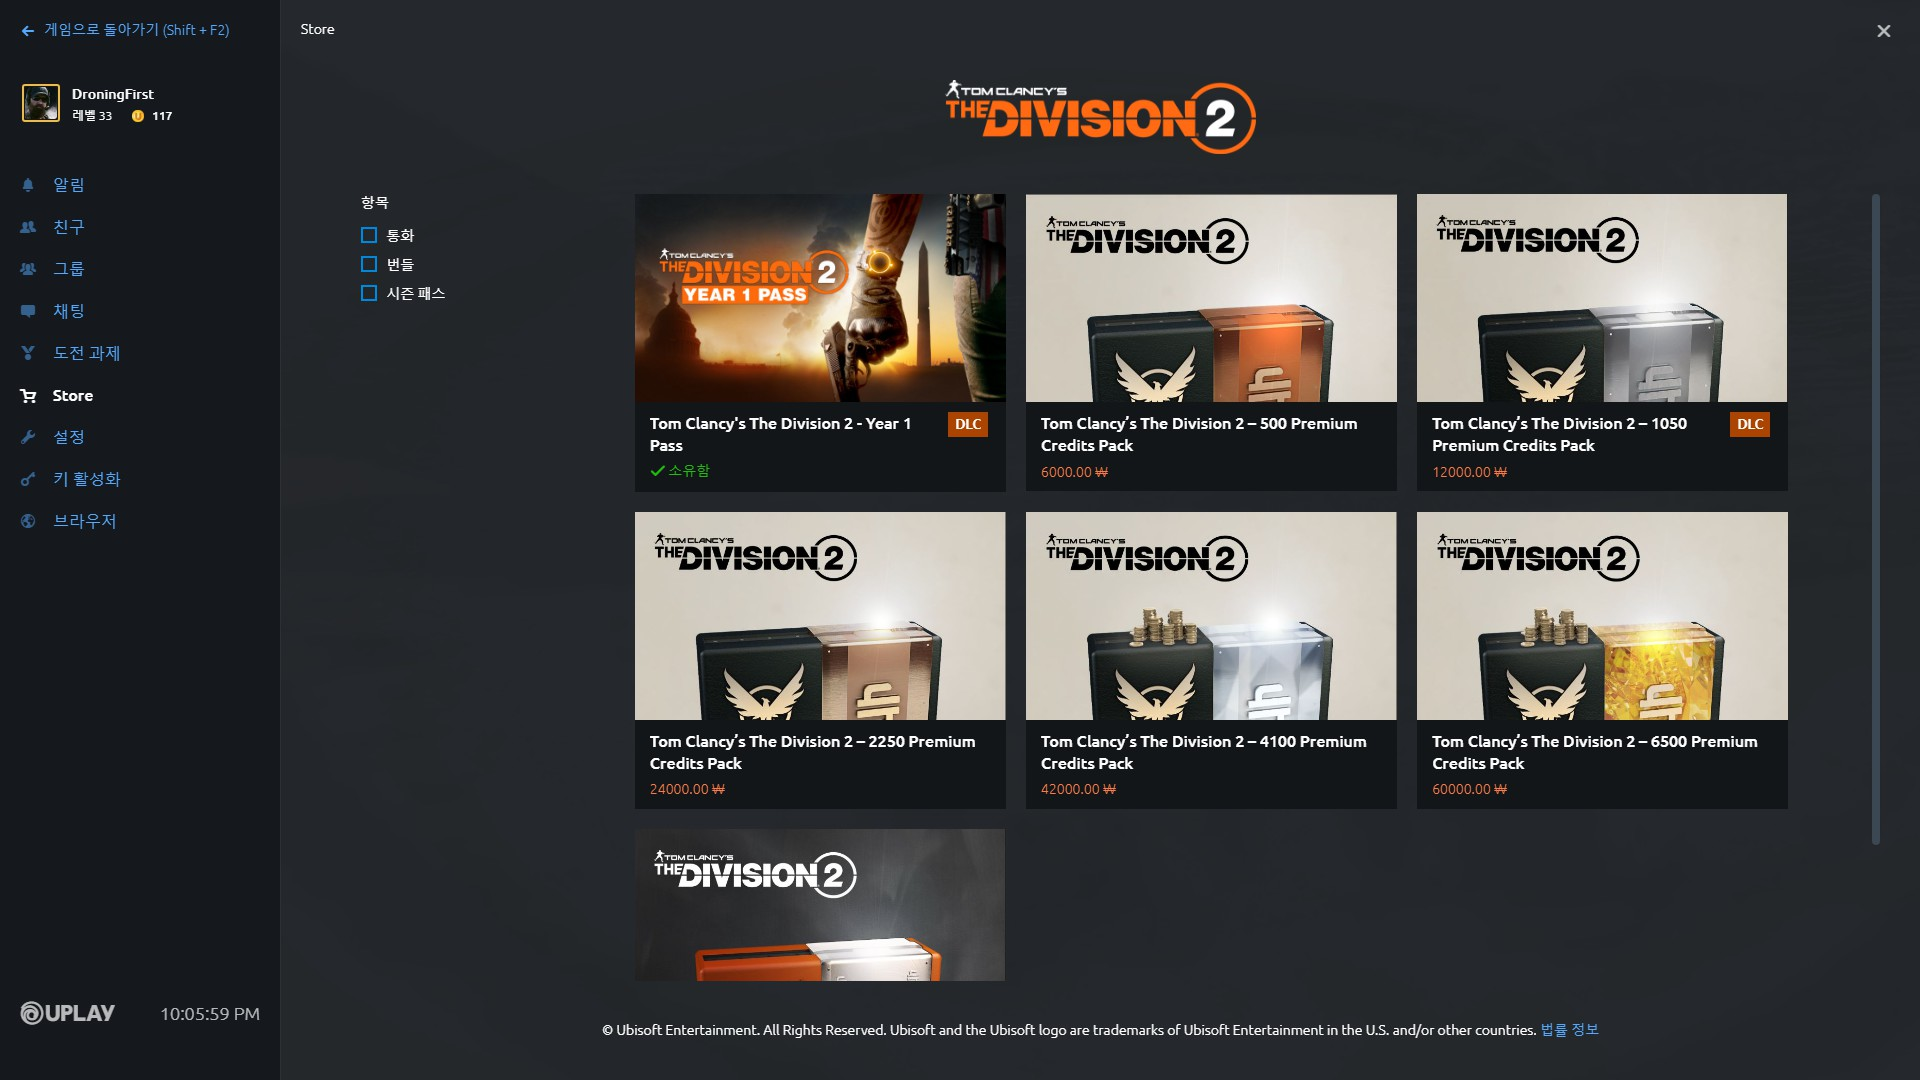 Tom Clancy's The Division® 22019-3-11-22-5-59.jpg